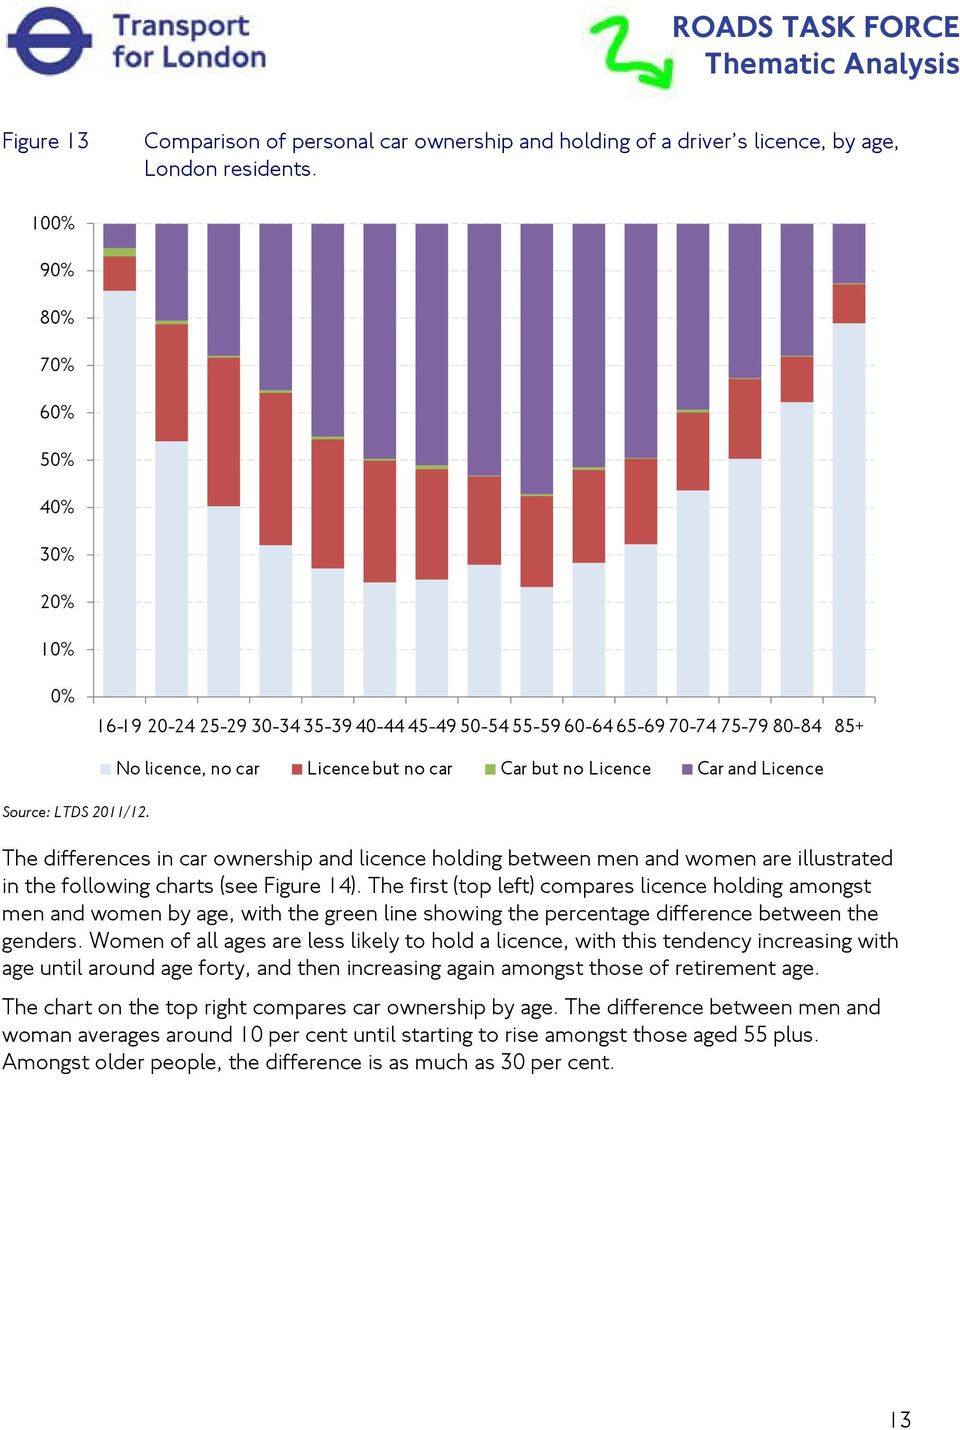 car ownership and licence holding between men and women are illustrated in the following charts (see Figure 14).